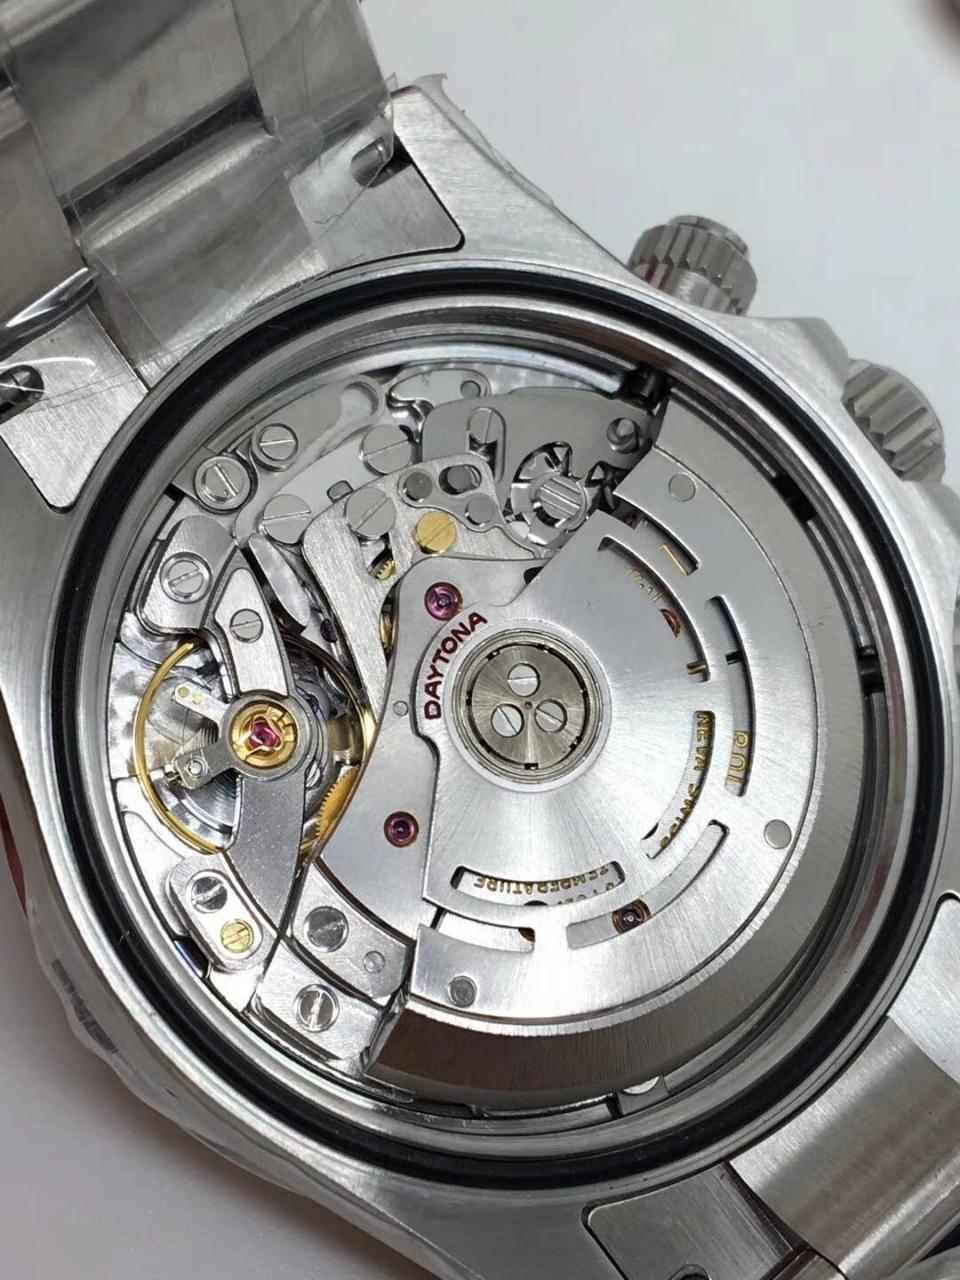 Noob Replica Rolex Daytona Cal.4130 Movement